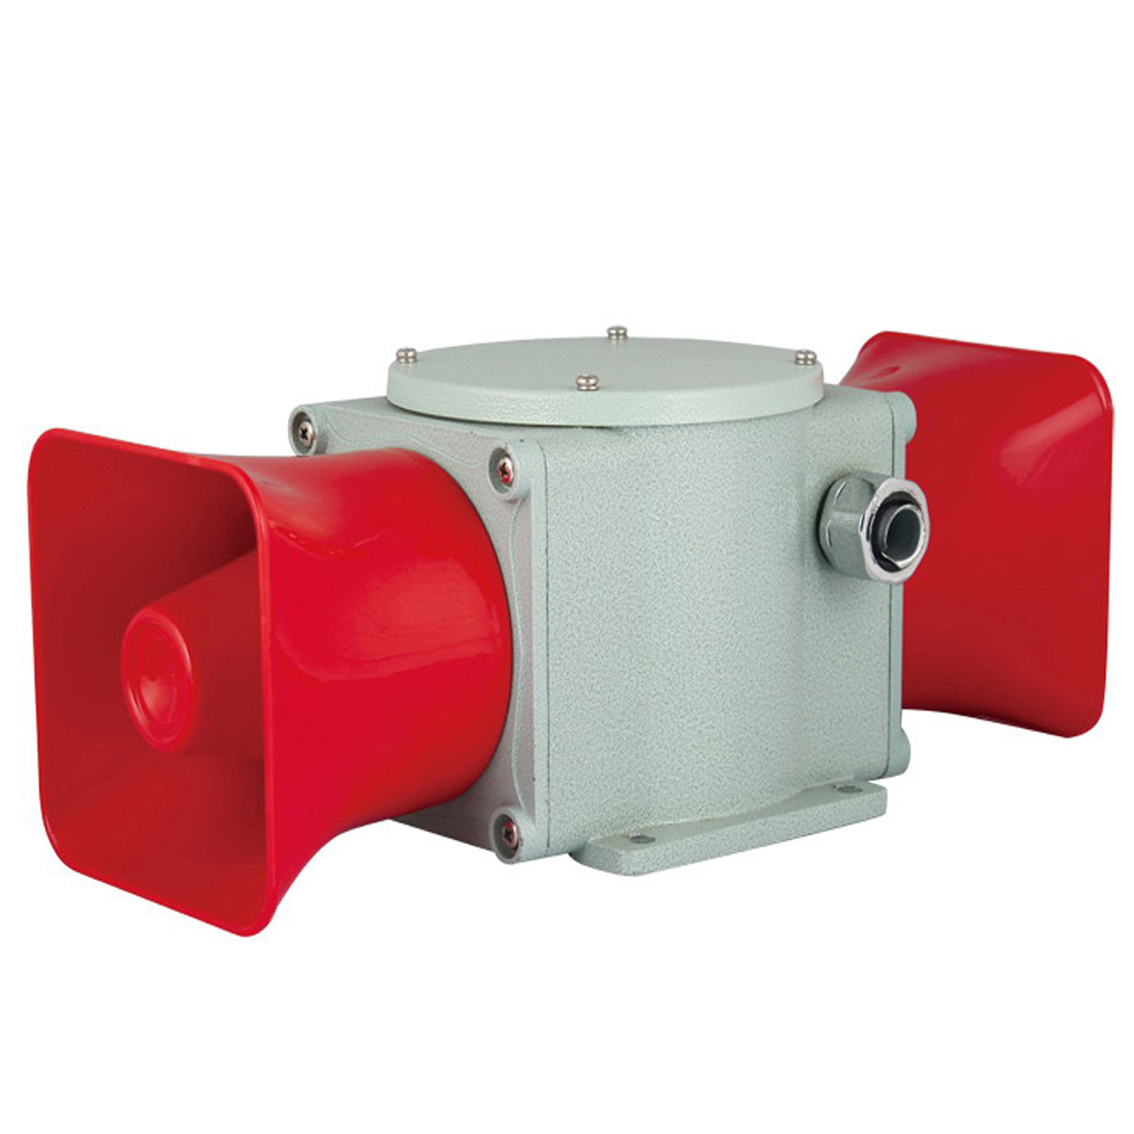 HDSD-135 Heavy Duty Alarm Sounder (Double Horns)